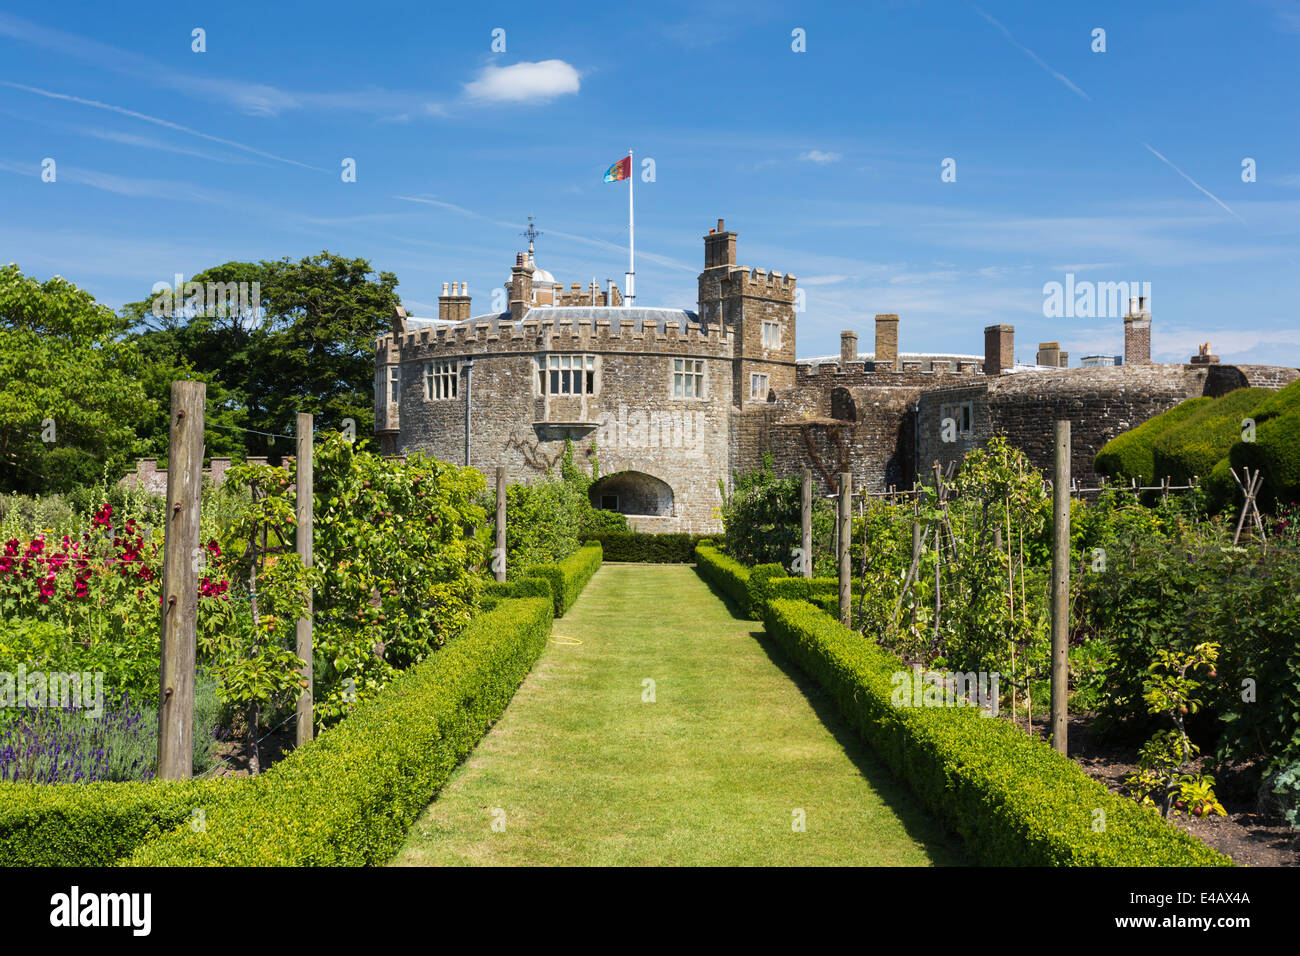 Kitchen Garden Walmer Castle Official Residence of the Lord Warden of the Cinque Ports - Stock Image